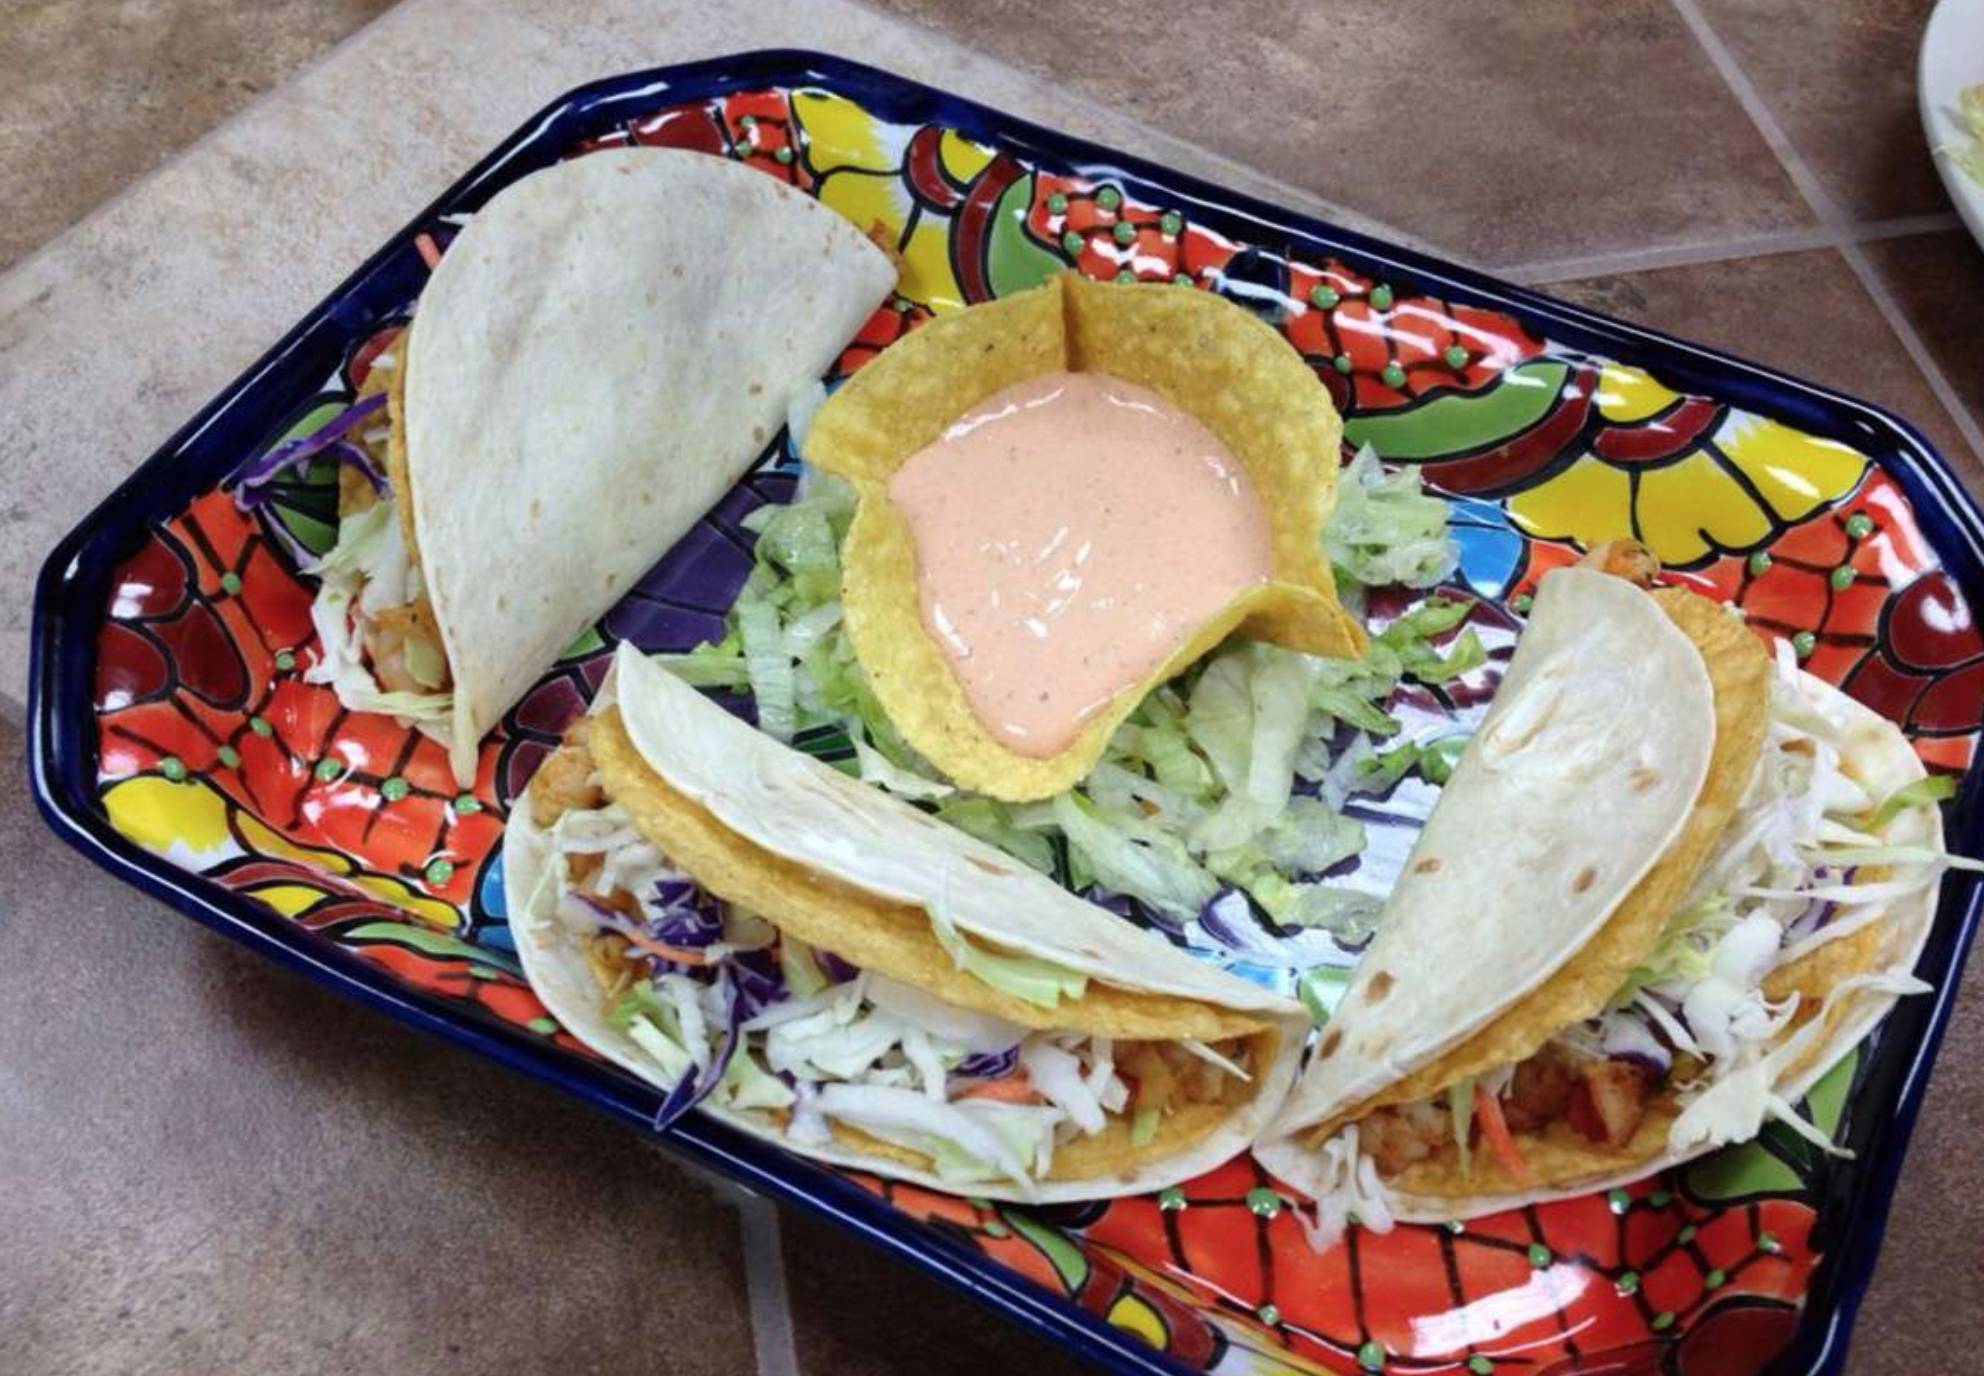 Taco Tuesday Aug 27 At Molcajete Mexican Restaurant